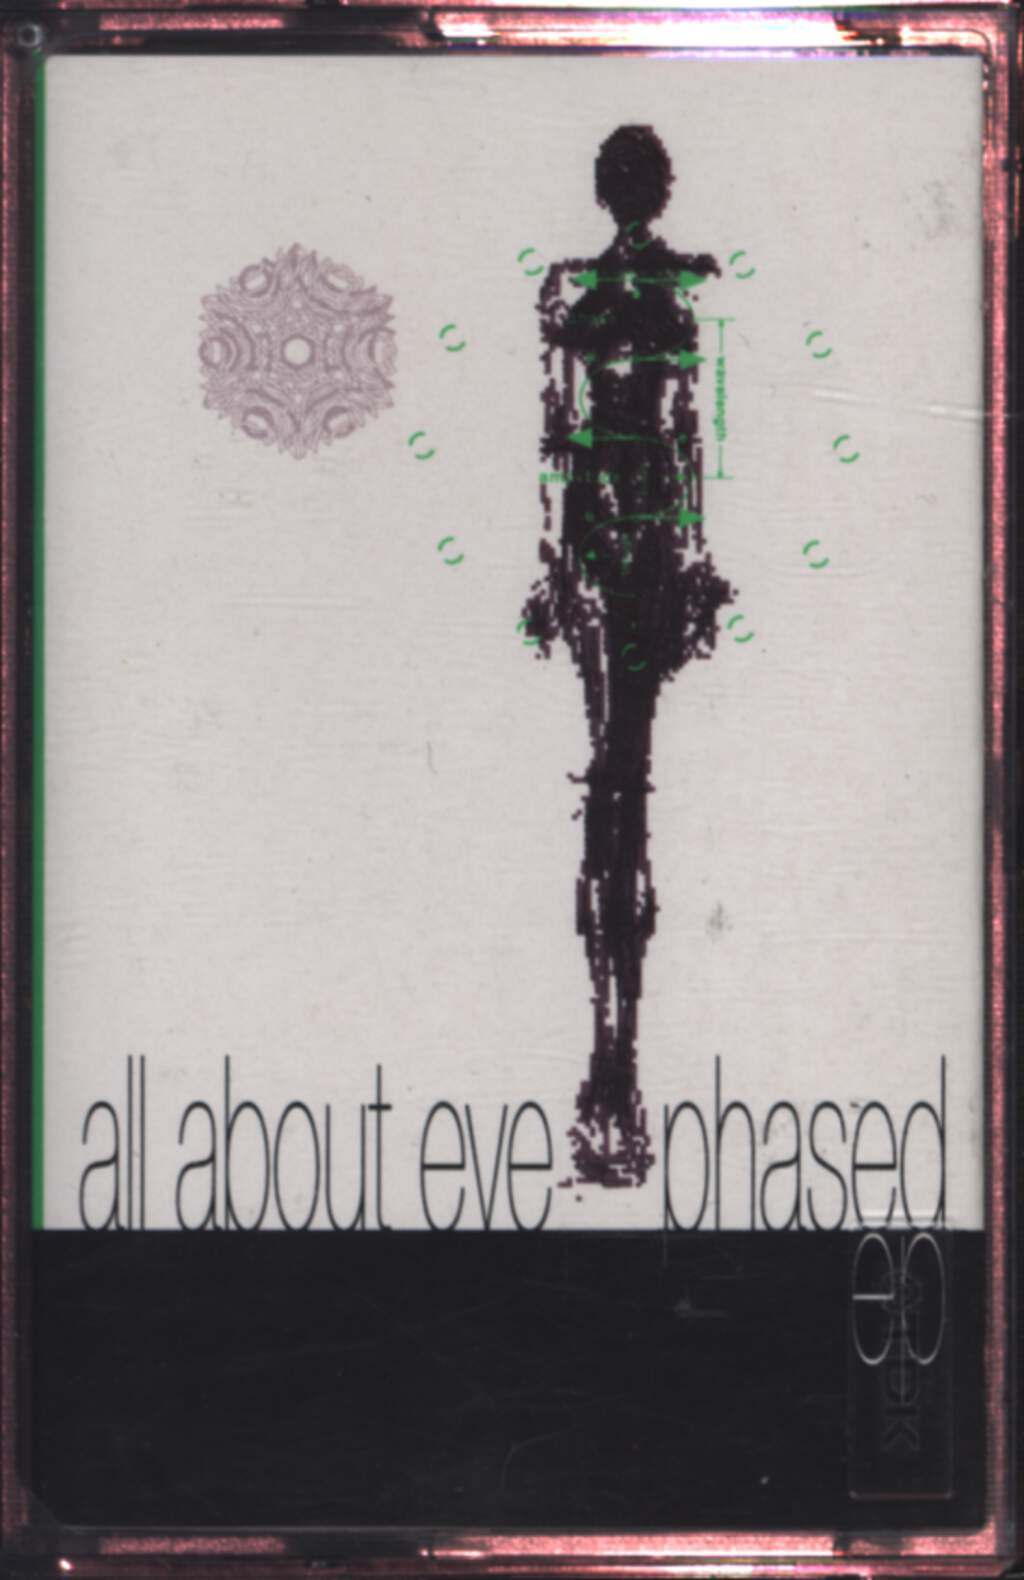 All About Eve: Phased EP, Compact Cassette